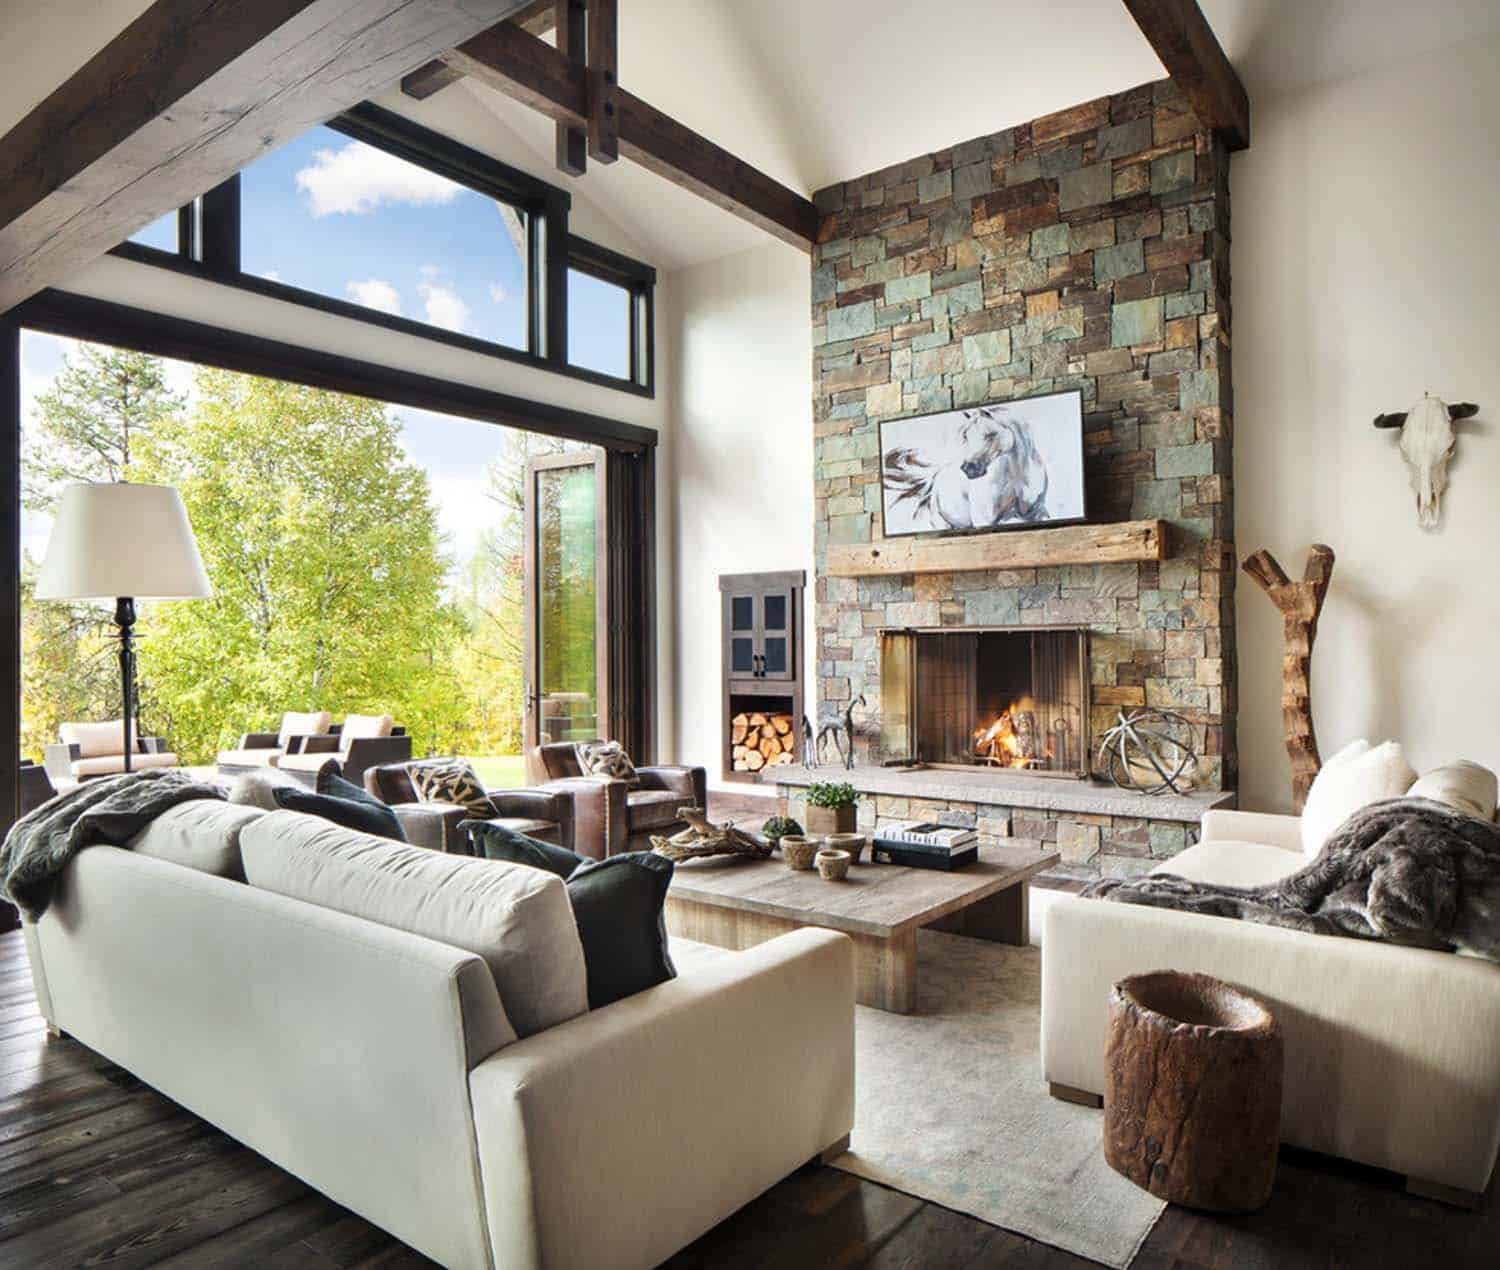 Rustic-modern dwelling nestled in the northern Rocky Mountains on Interior:ybeqvfpgwcq= Modern House Ideas  id=88324